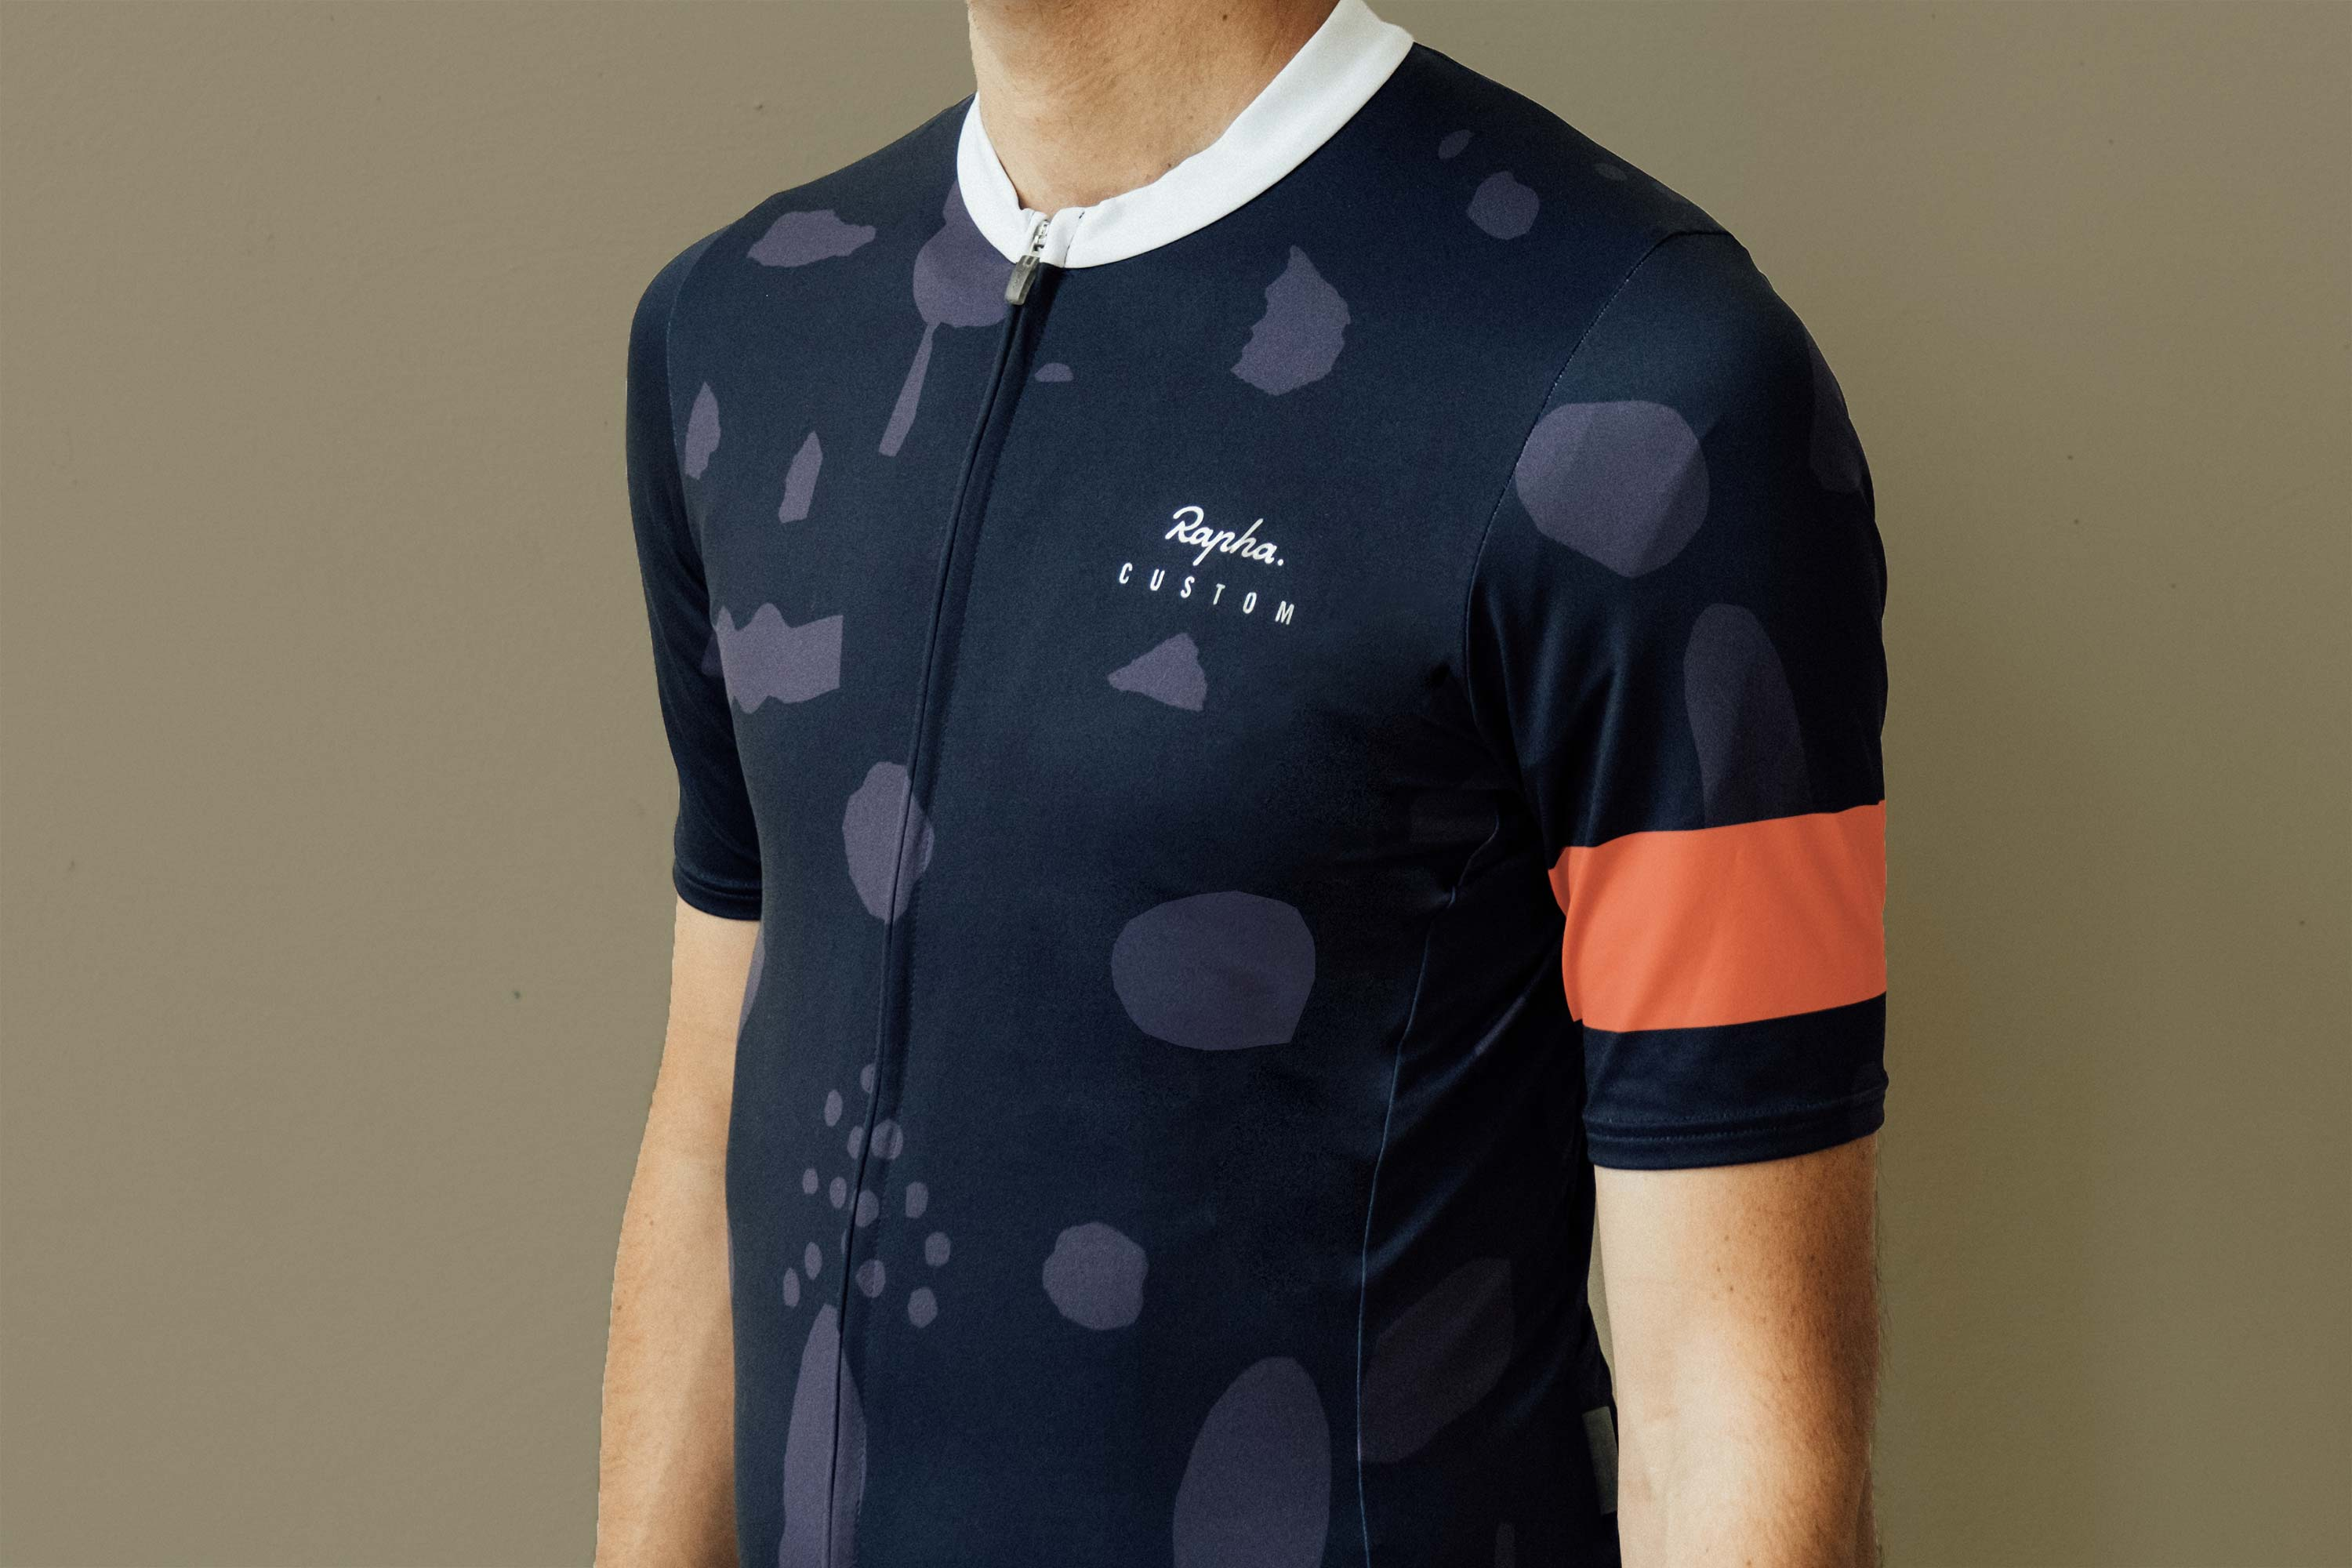 siotes-rapha-cycling-seattle-design-tacoma-studio-patterns-clothing-apparel-bike-2